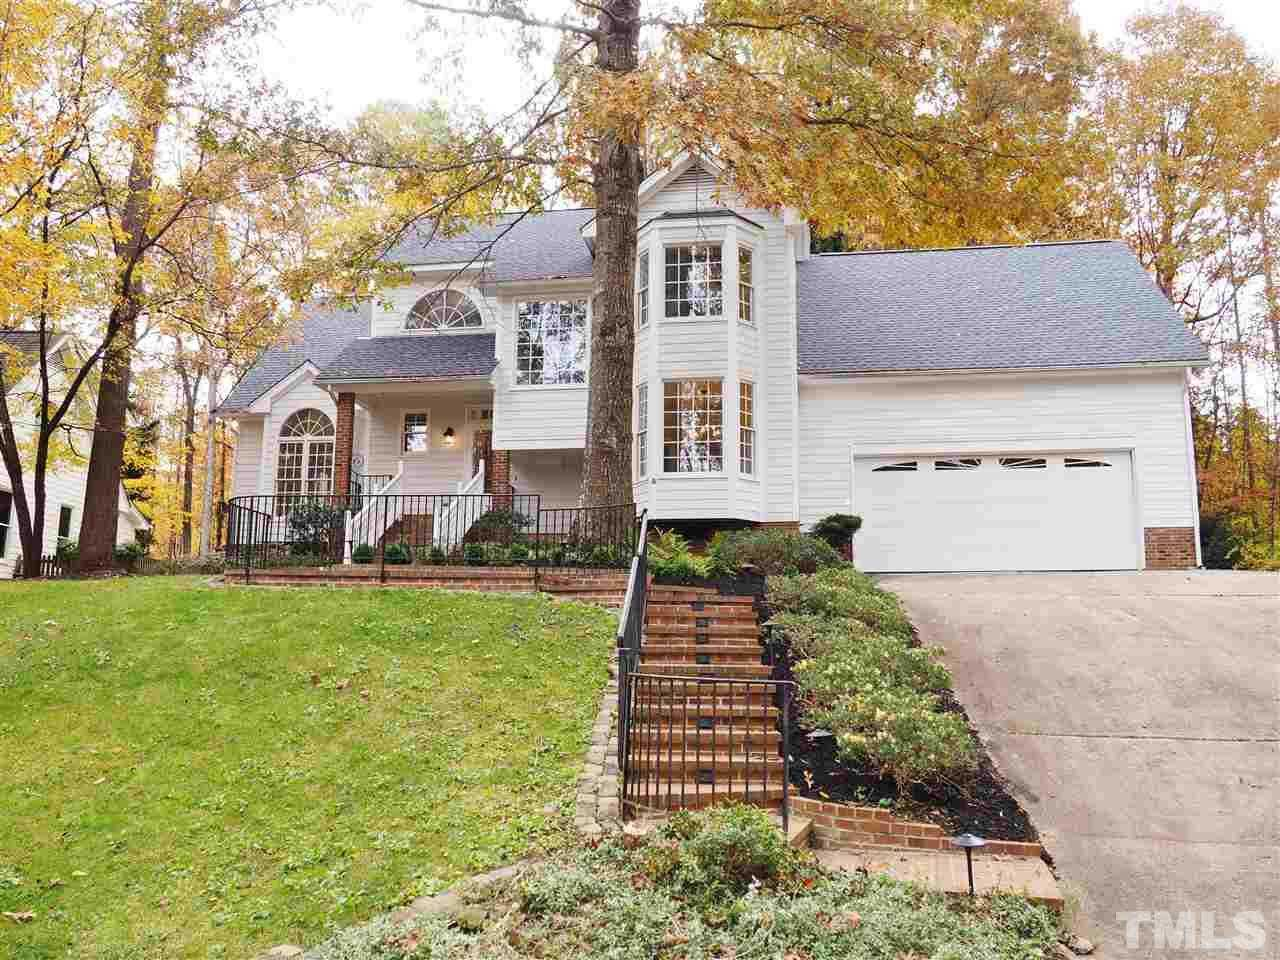 $475,000 - 4Br/4Ba -  for Sale in Wildwood Green, Raleigh